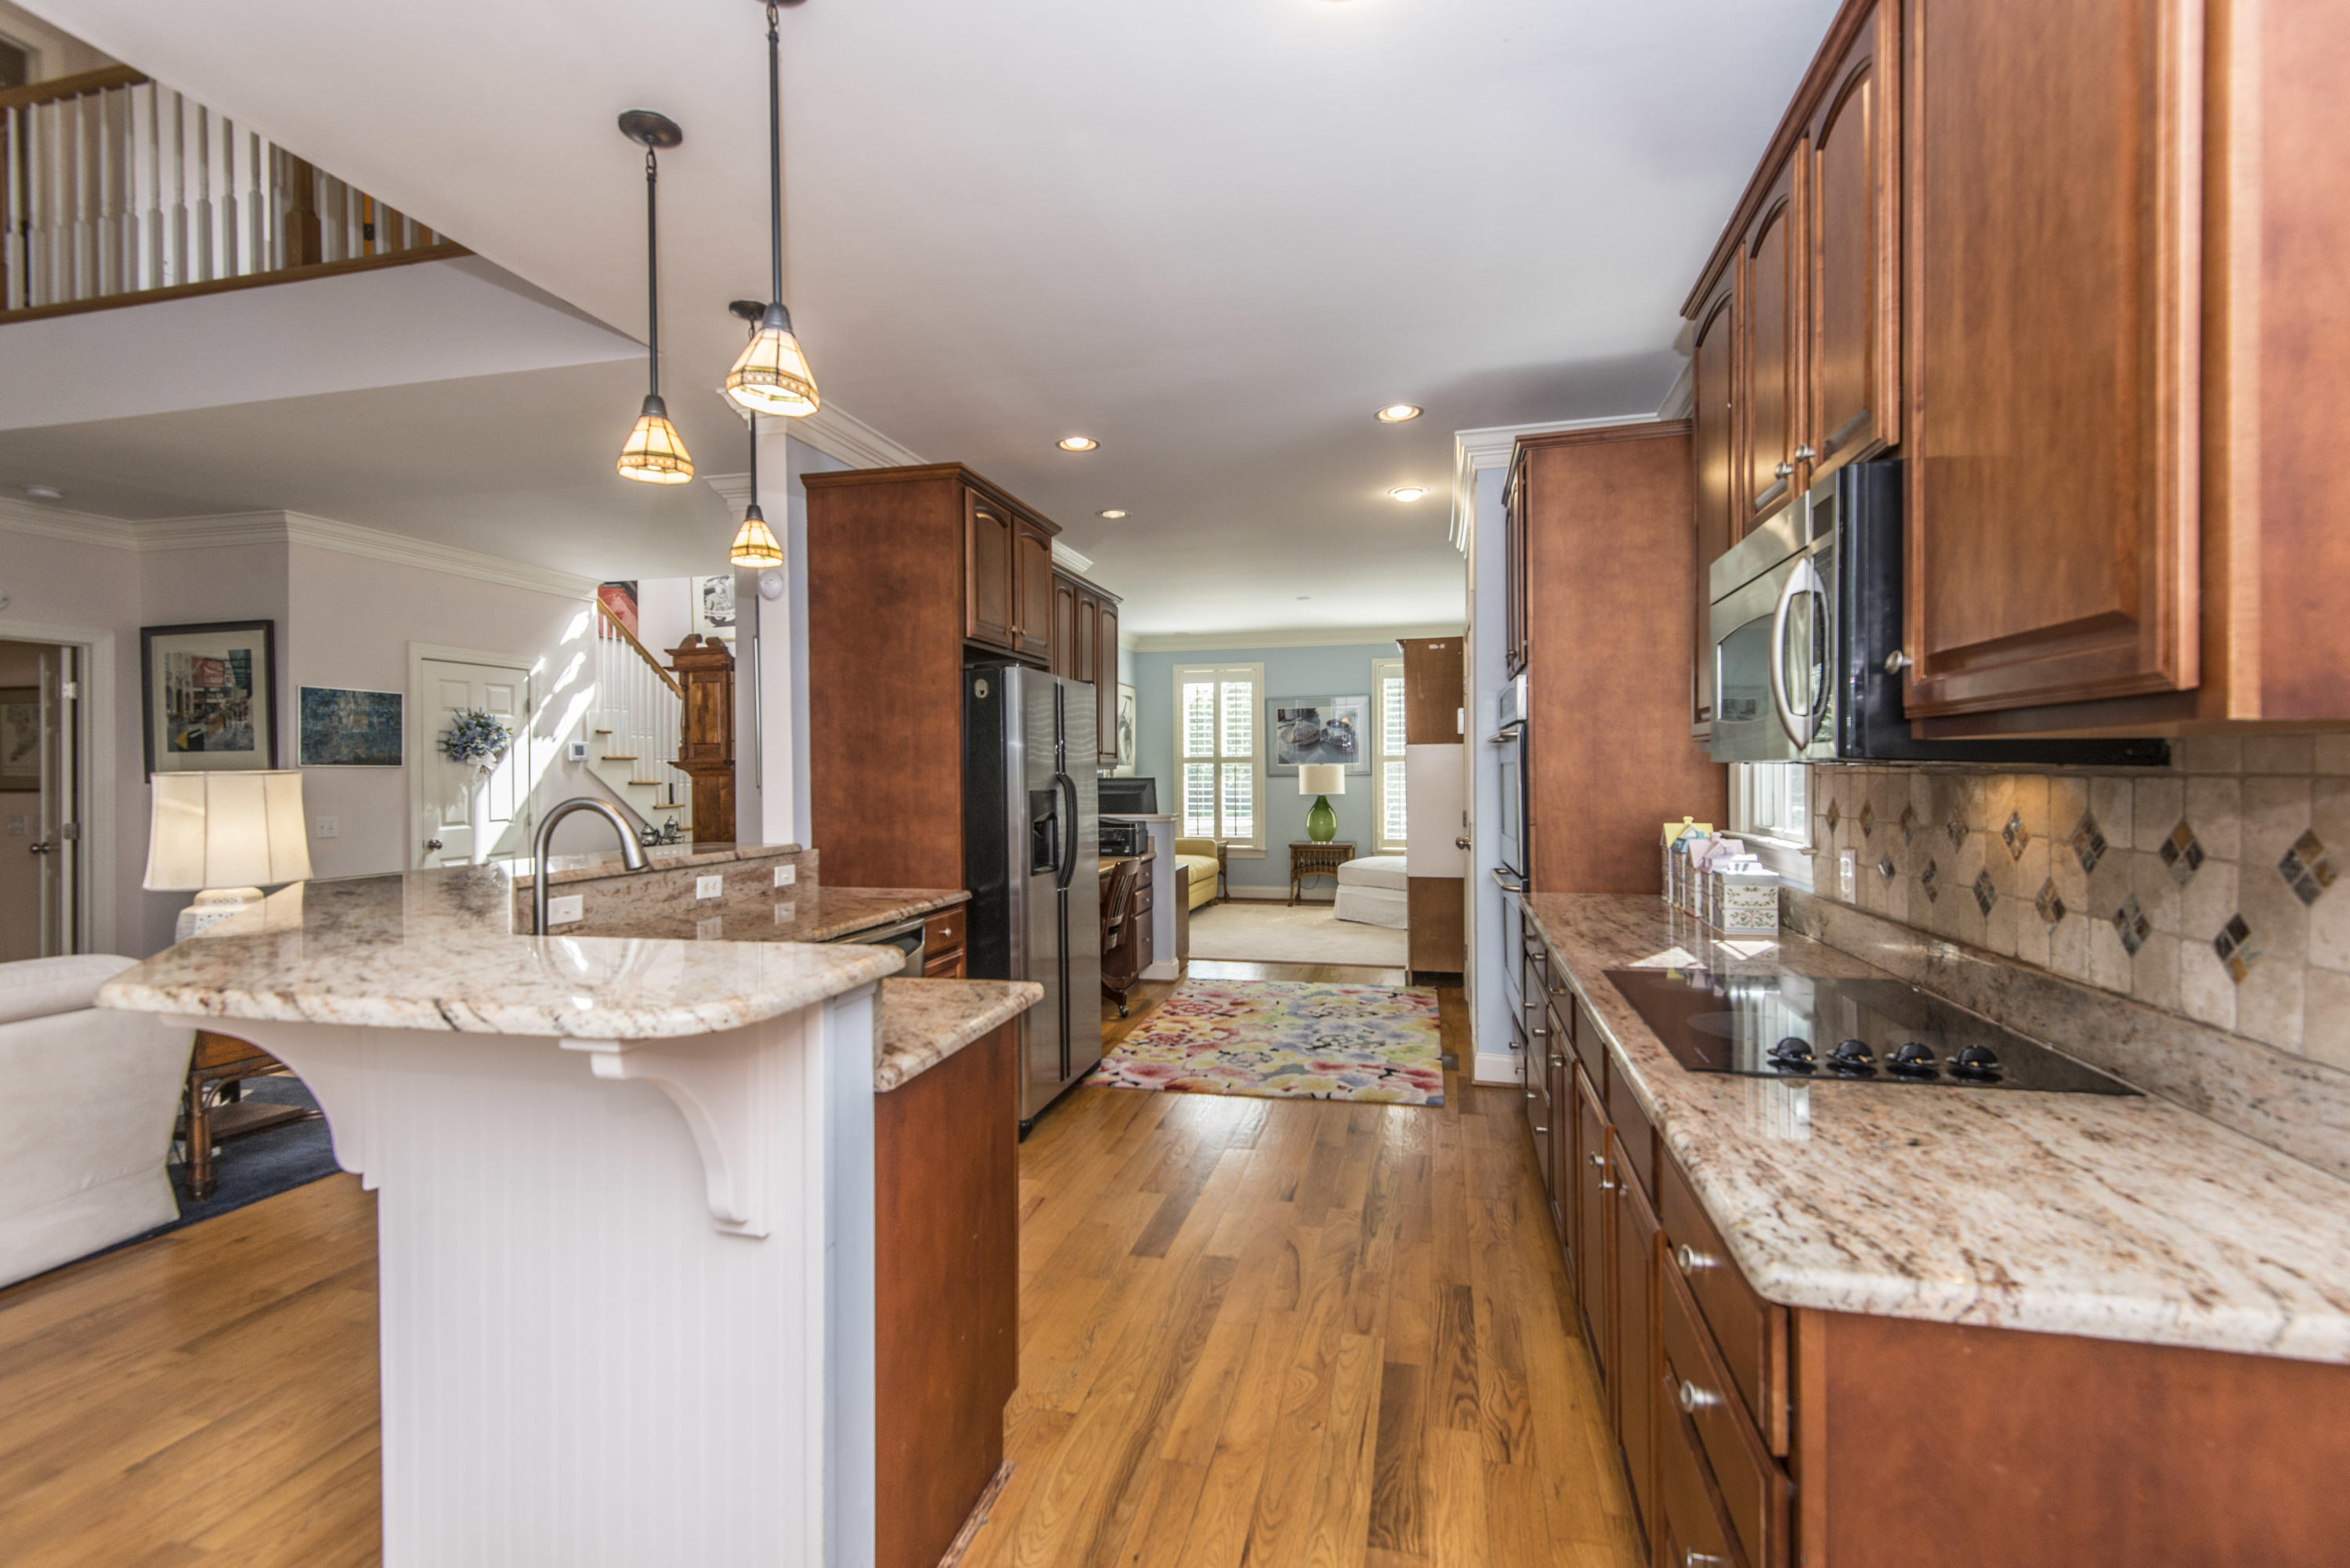 The Villages In St Johns Woods Homes For Sale - 4087 Amy, Johns Island, SC - 7